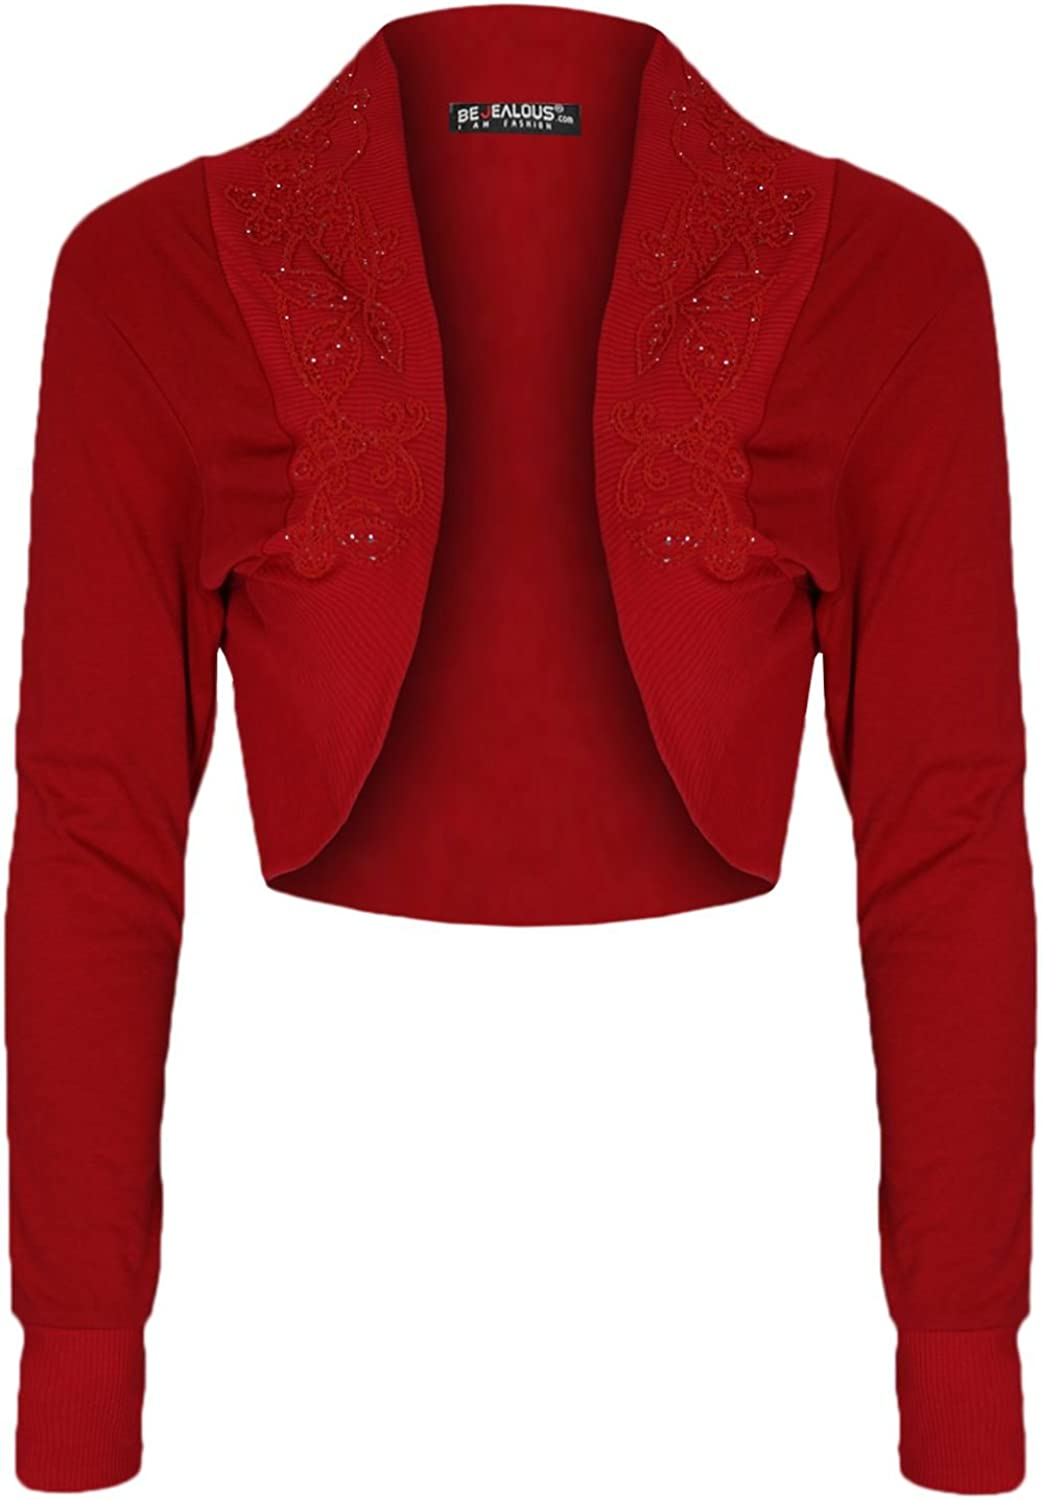 Oops Outlet Women's Diamantes Studded Cotton Bolero Cardigan Shrug Cropped Top